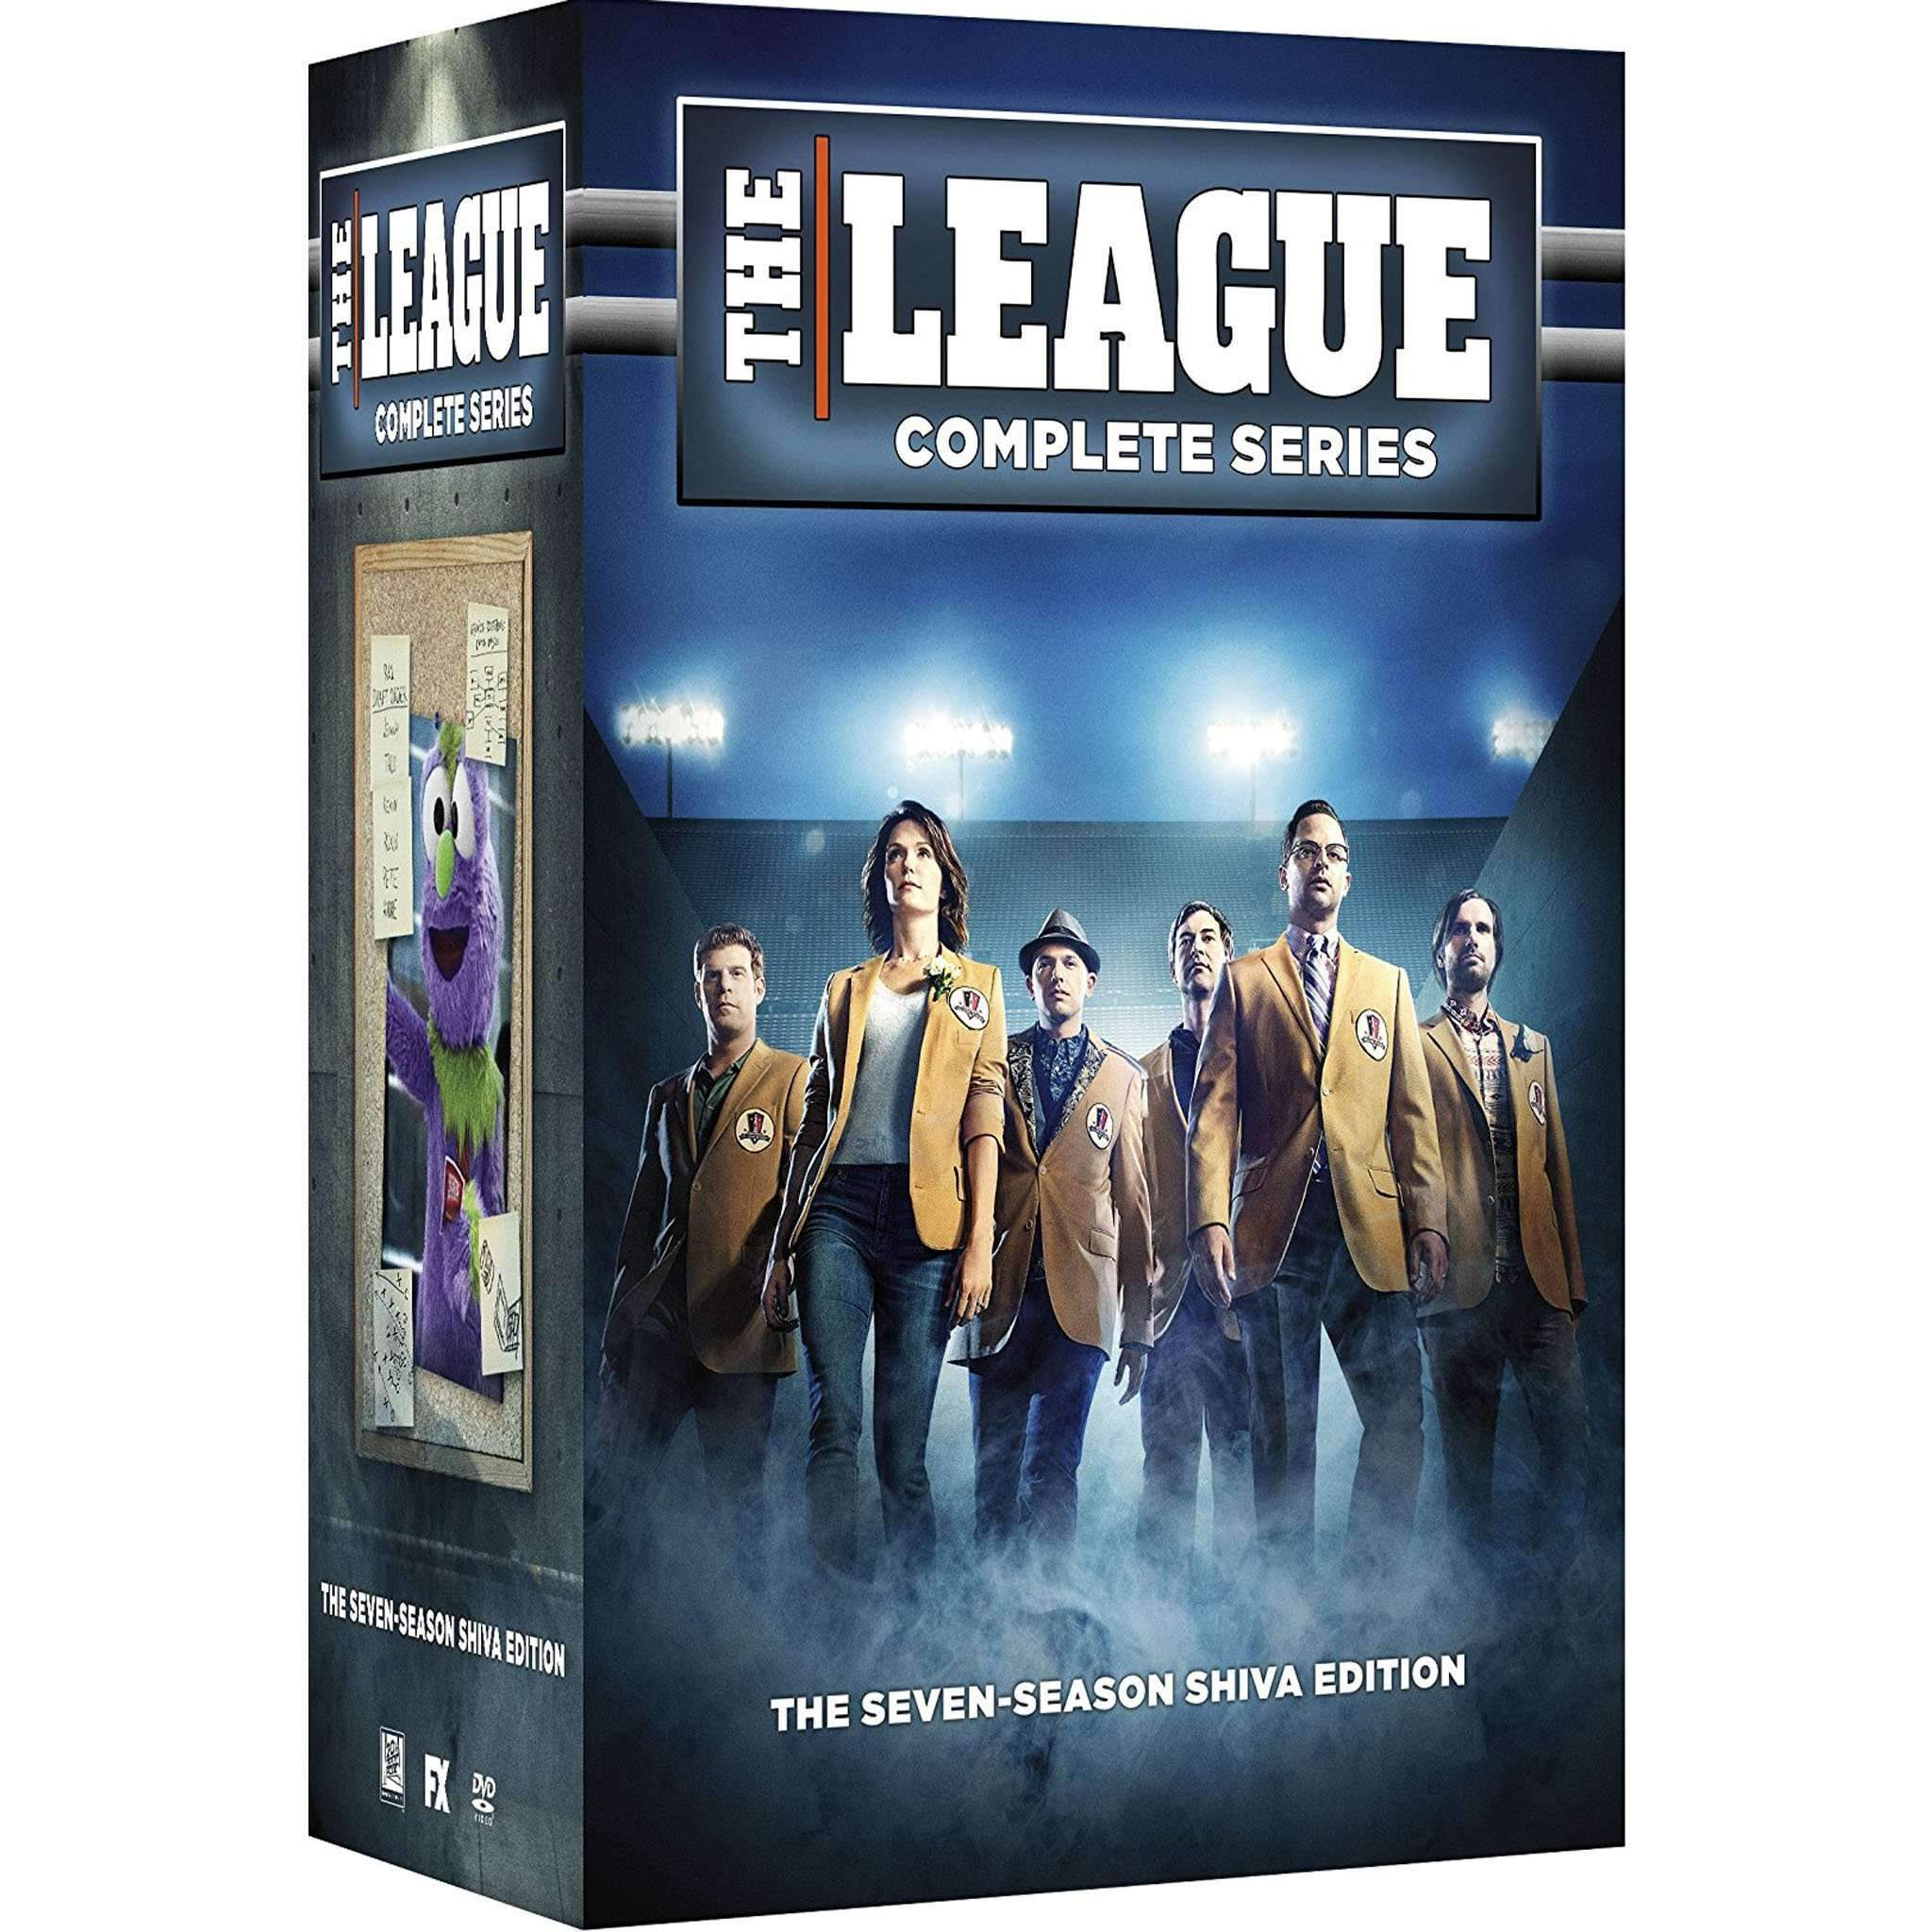 The League DVD Complete Series Box Set - DVDsHQ